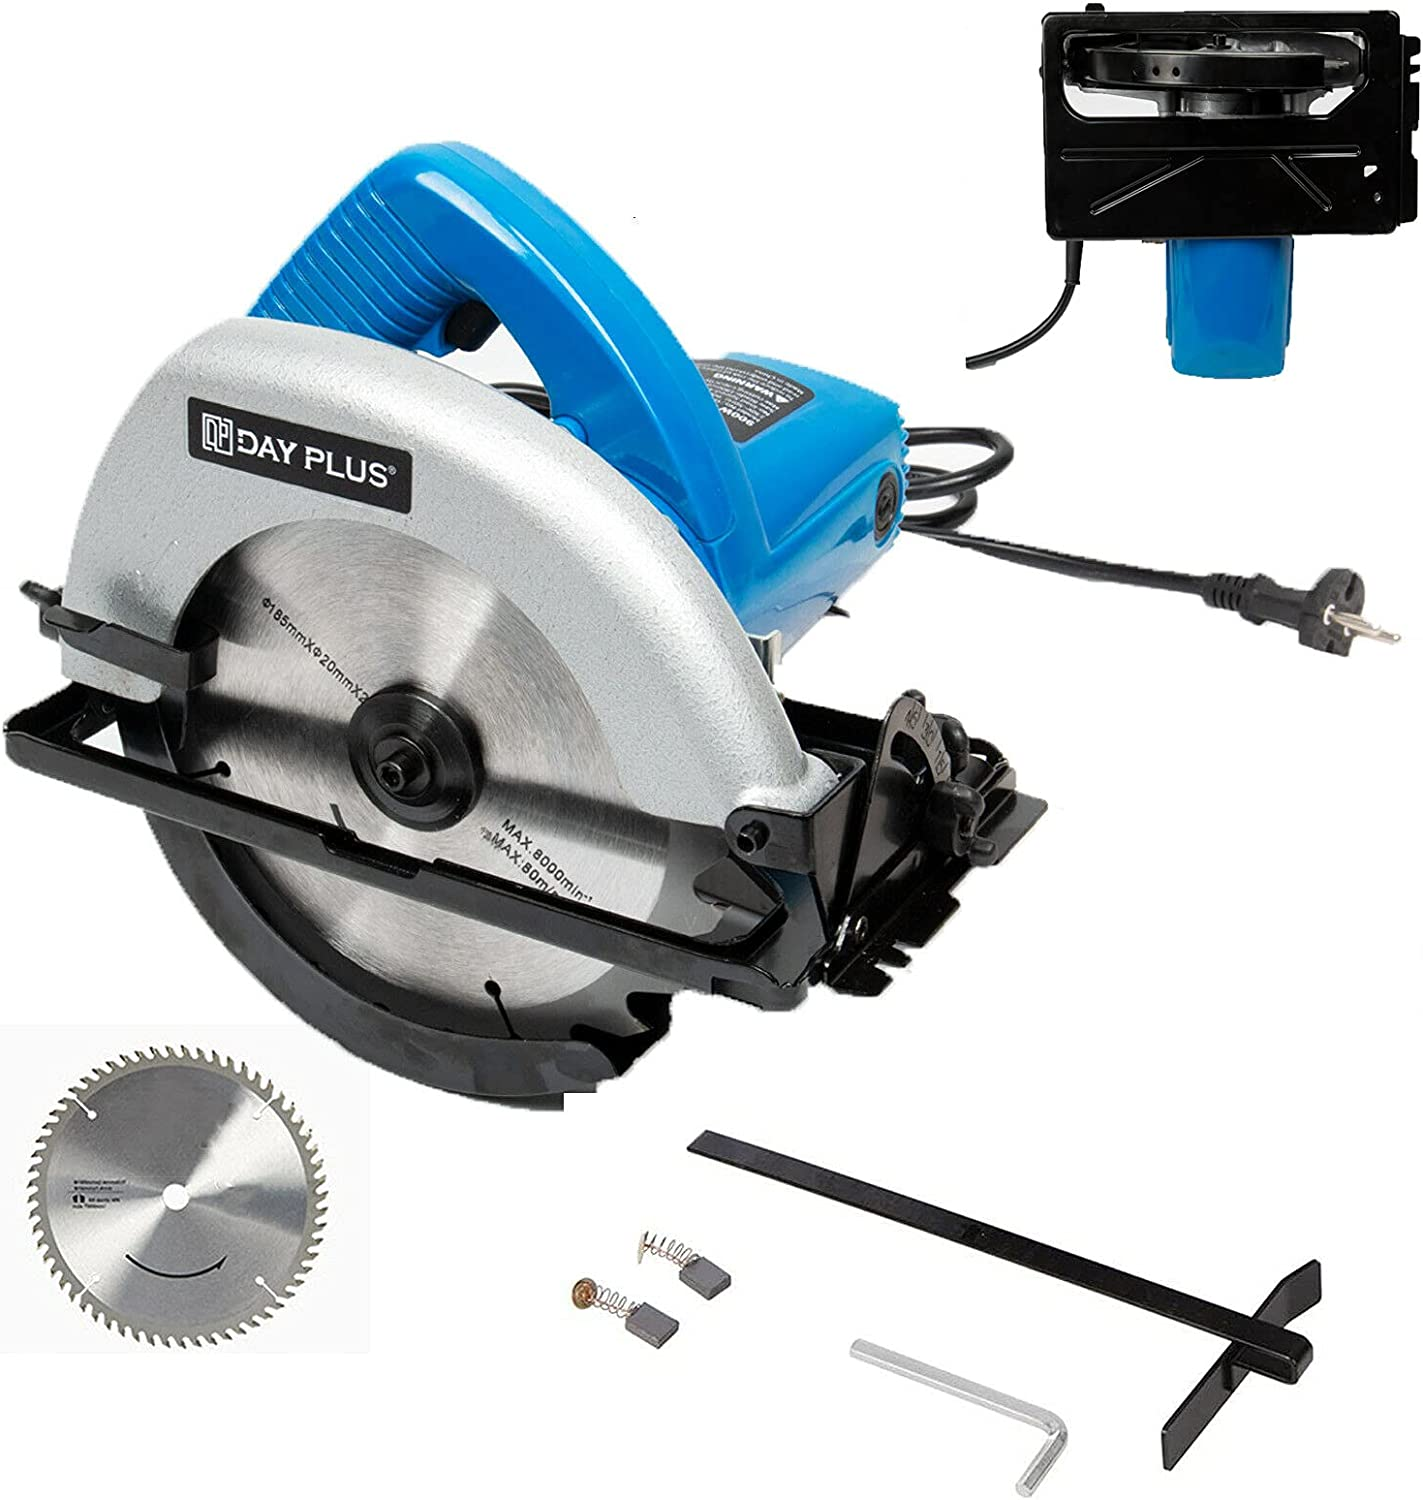 Power Circular Saw Corded 900W Electric Oakland Mall Cheap SALE Start DIY w Tools